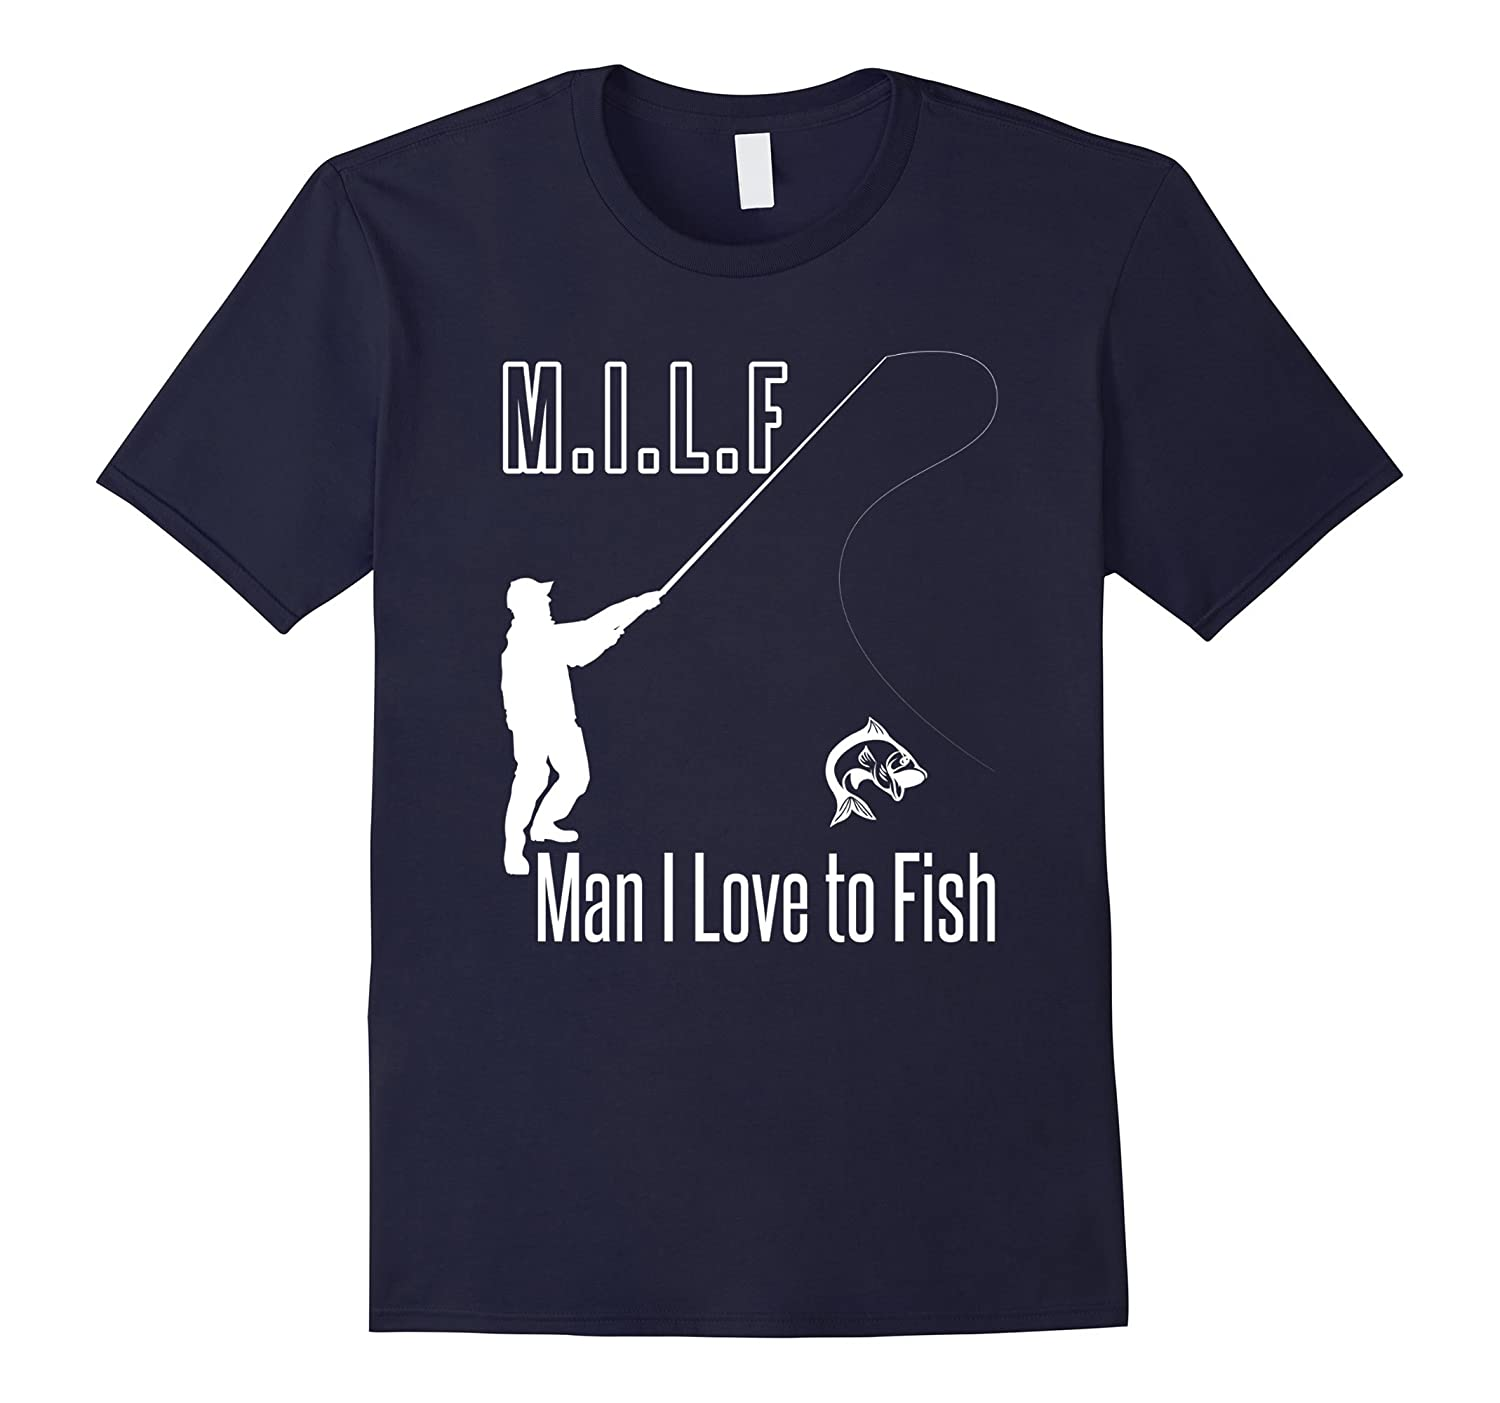 Man i love to fish t shirt goatstee for Man i love fishing